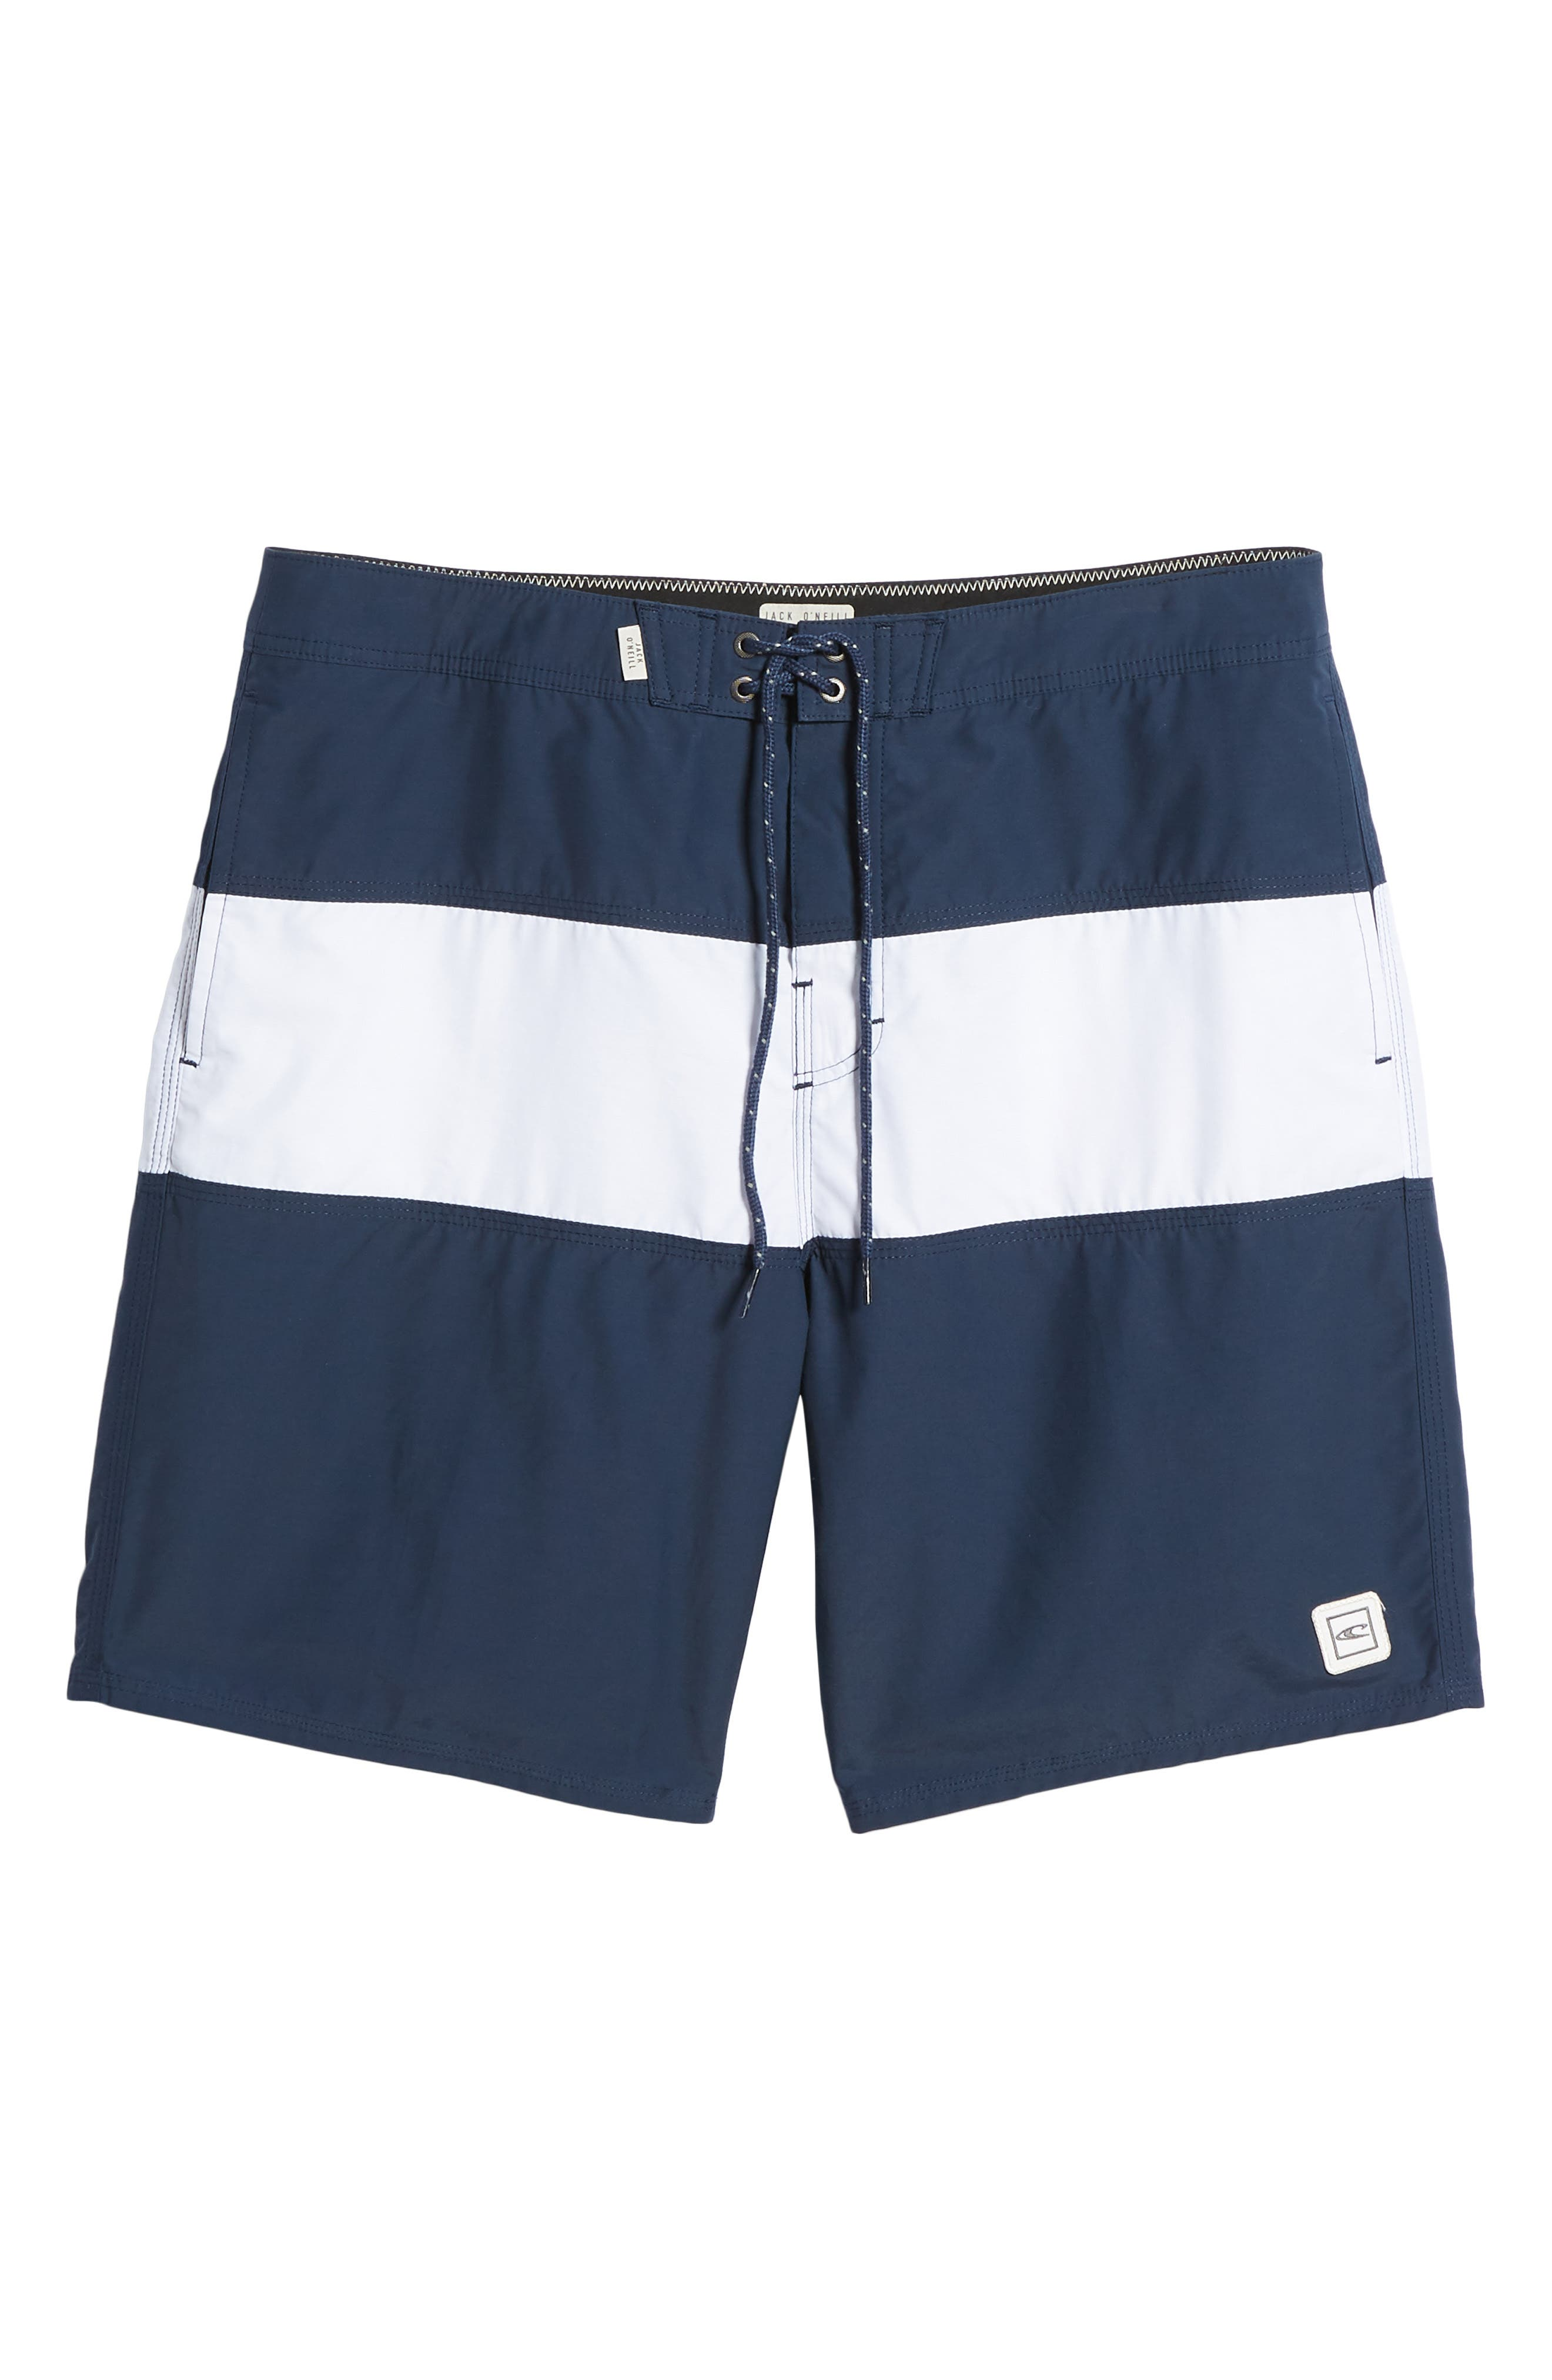 Heritage Board Shorts,                             Alternate thumbnail 6, color,                             NAVY